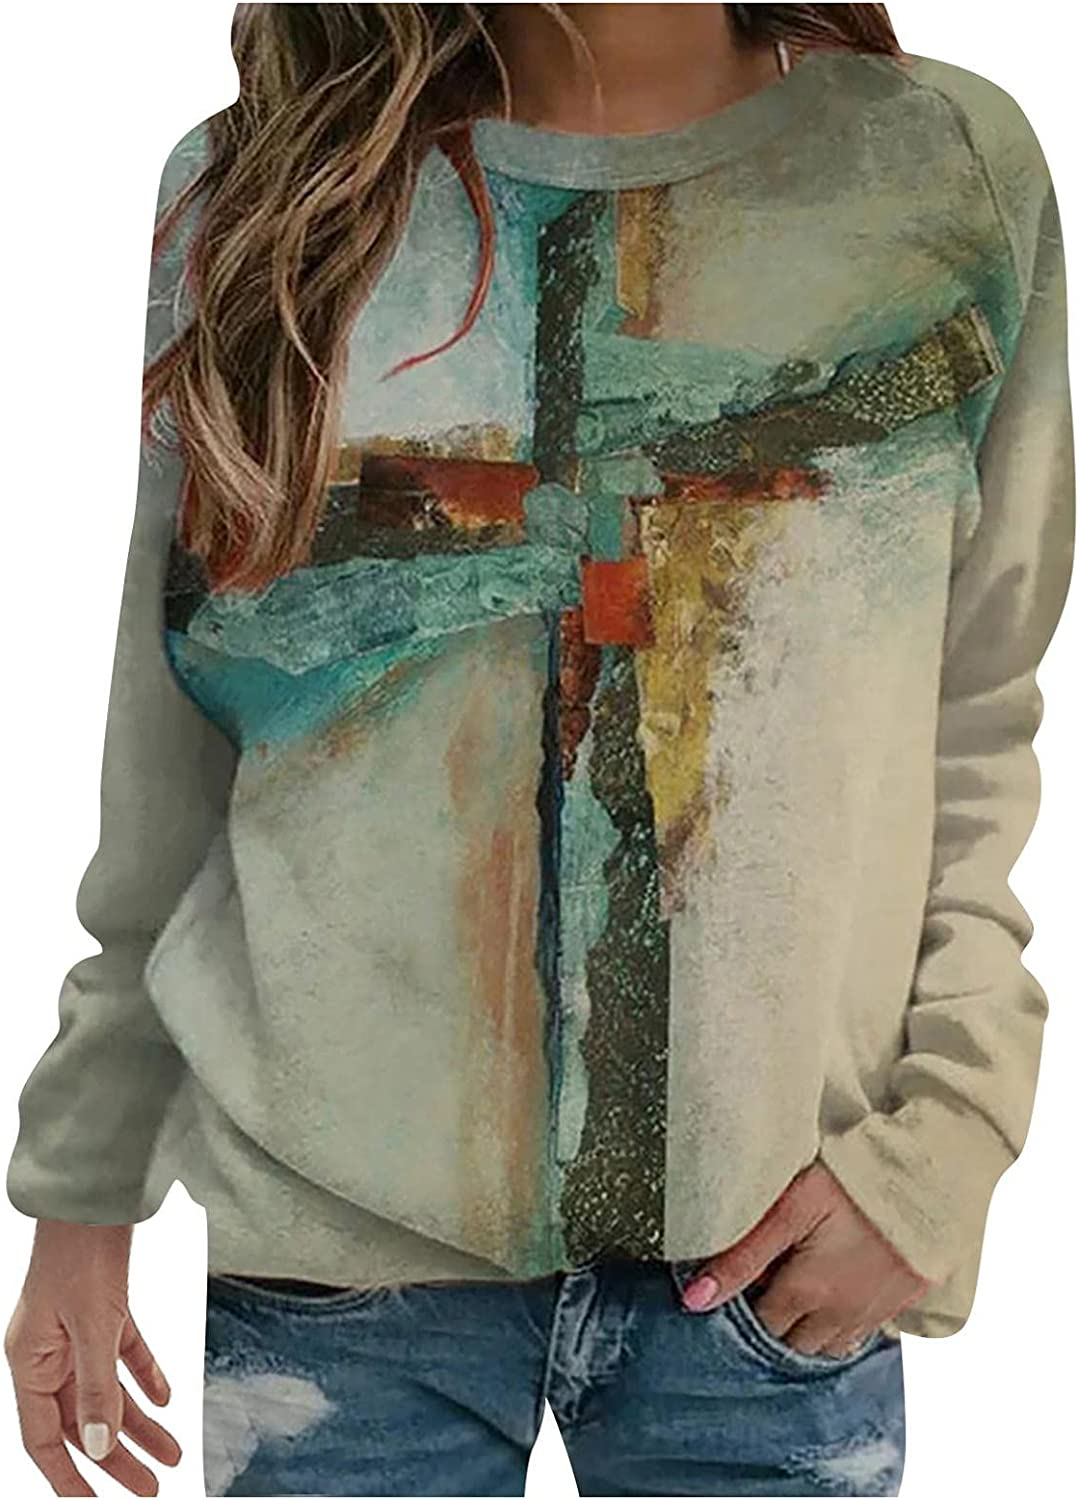 Plus-Size Women's Sweatshirt Casual T-Shirts: Painting Graphic Long Sleeve Crew Neck Novelty Loose Fall Tunic